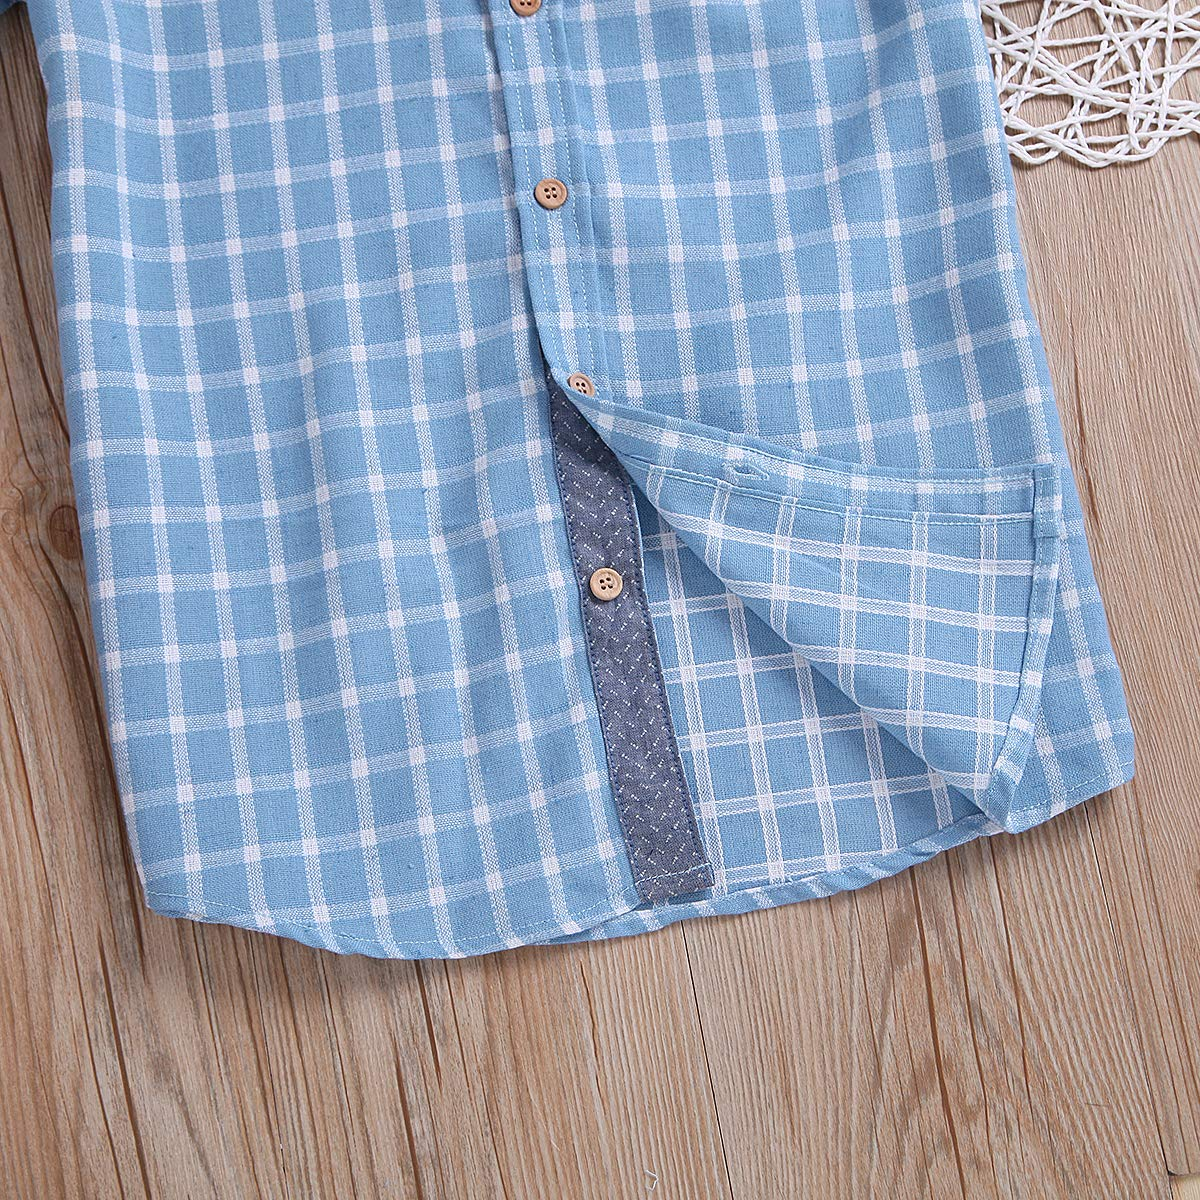 Turuste Fashion Toddler Kids Boys Button Down Shirts Short Sleeve Blue Plaid Shirts with Pocket Party School Summer Clothes